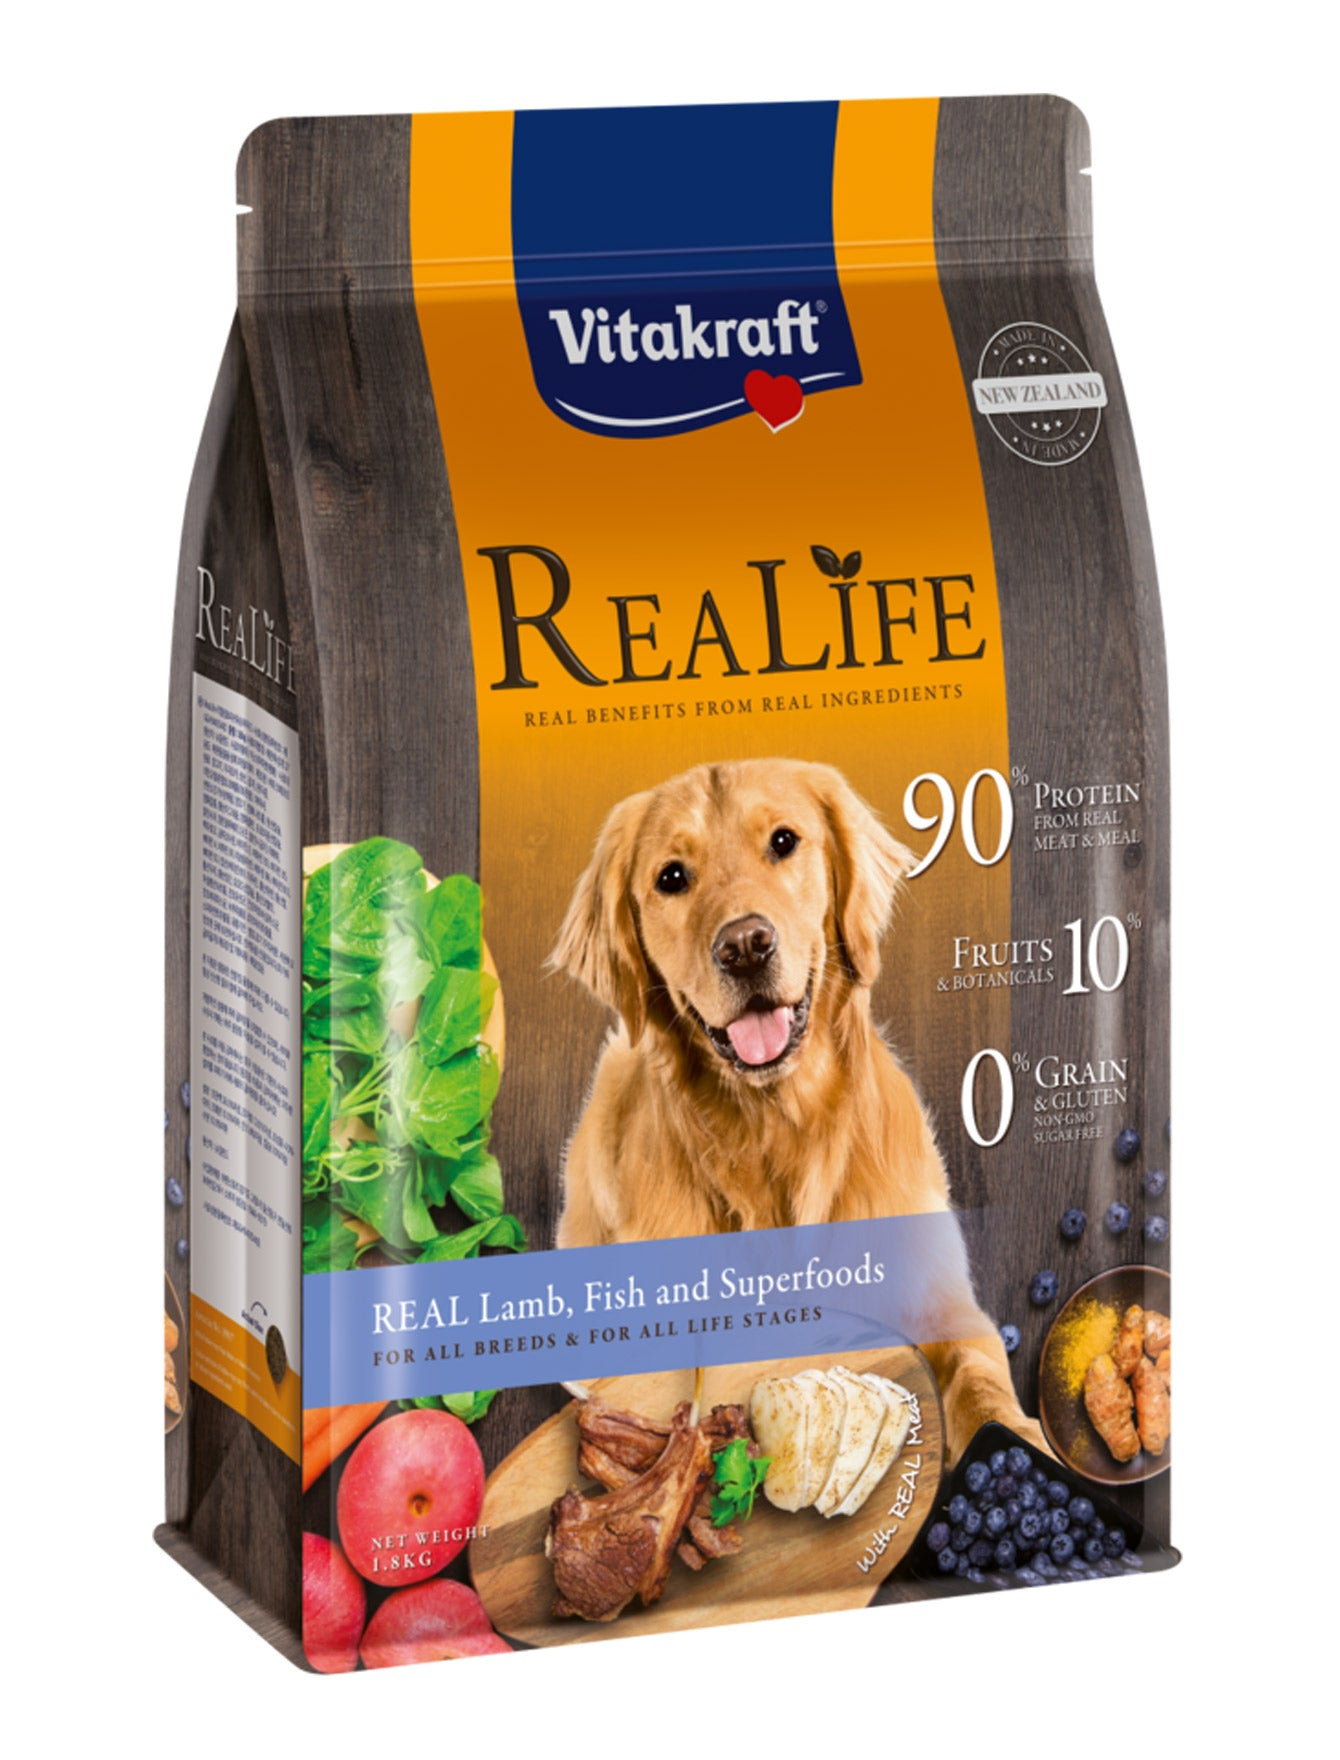 Vitakraft ReaLife Real Lamb, Fish & Superfoods Dog Dry Food | Perromart Online Pet Store Singapore